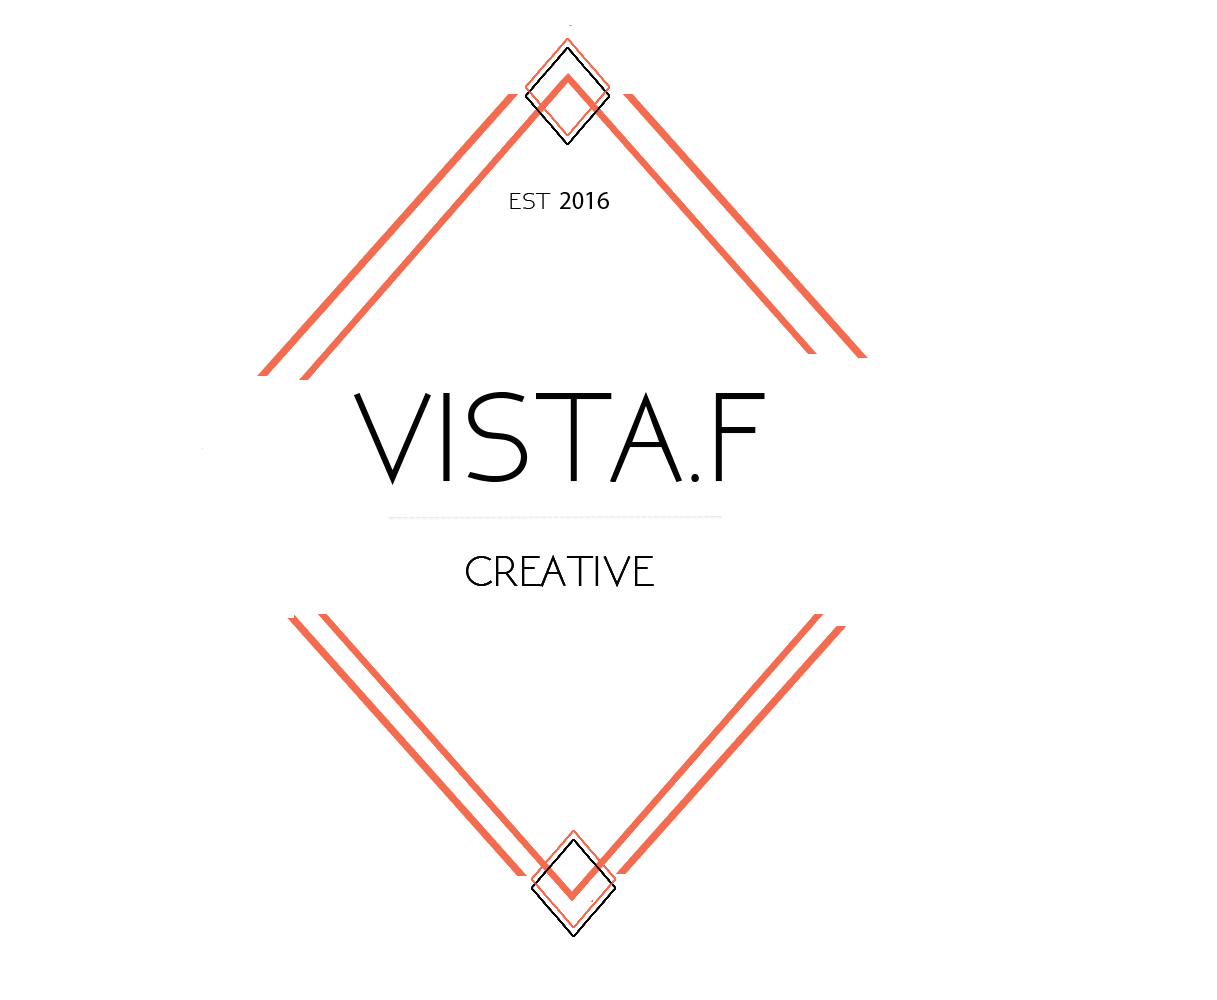 vistaf.co.za